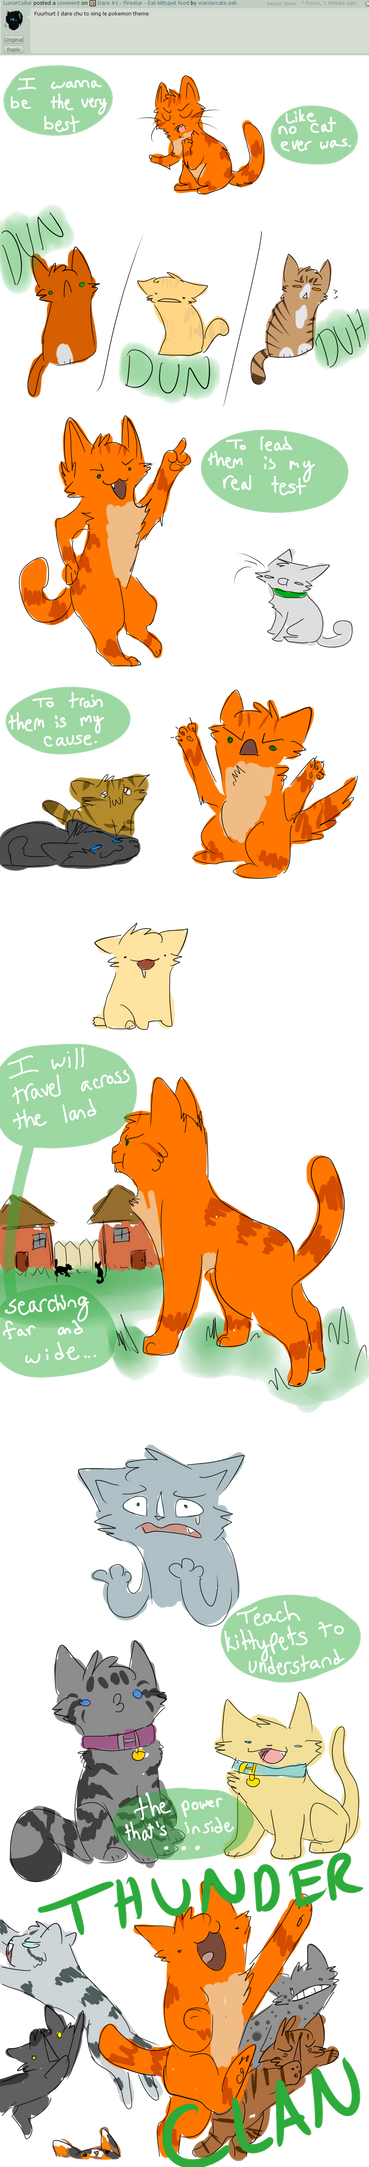 Dare #2 - Firestar - ThunderClan Theme by warriorcats-ask